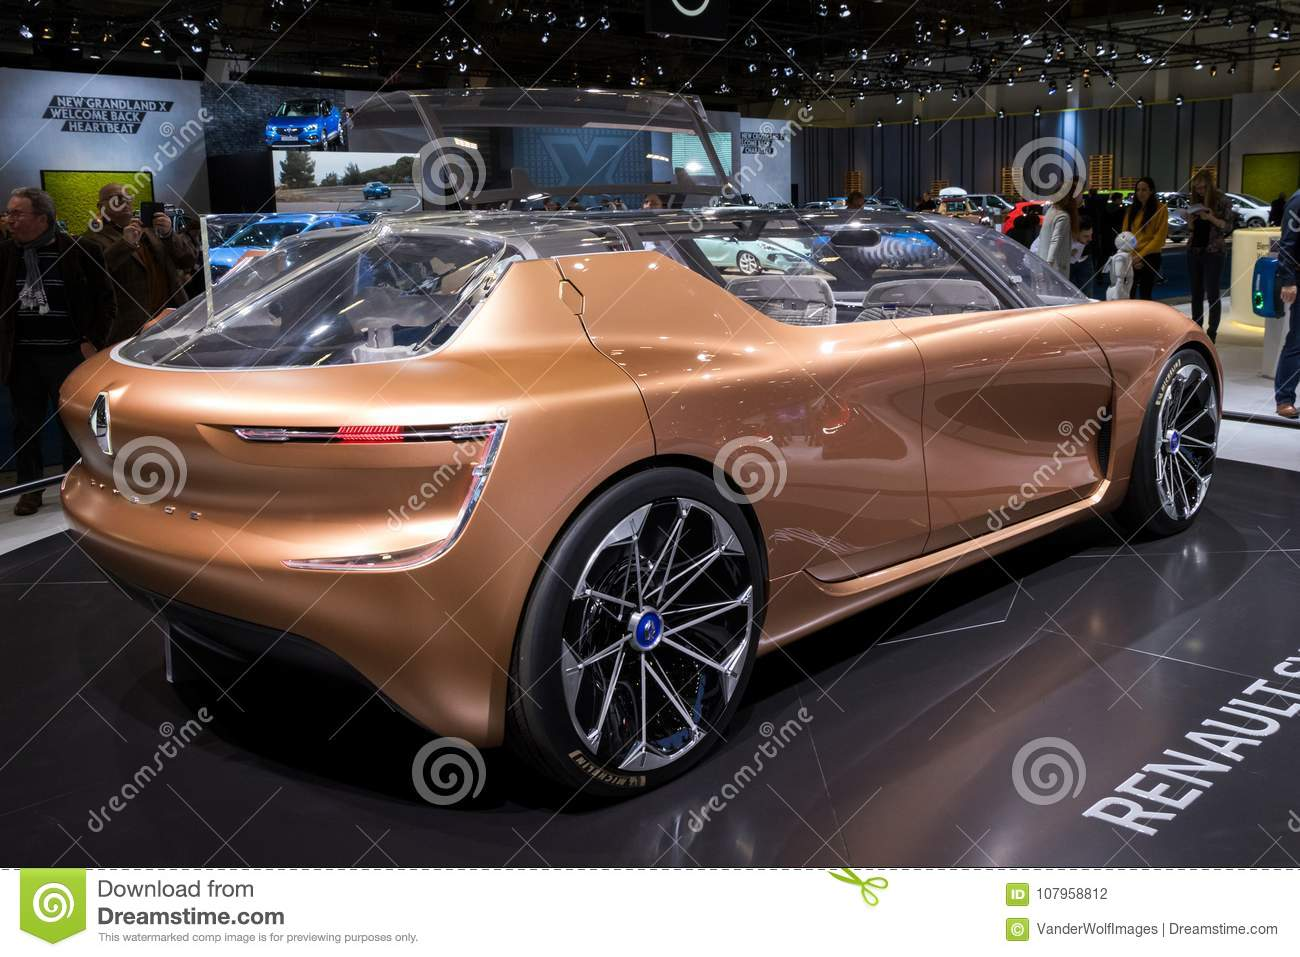 1 949 Renault Concept Car Photos Free Royalty Free Stock Photos From Dreamstime